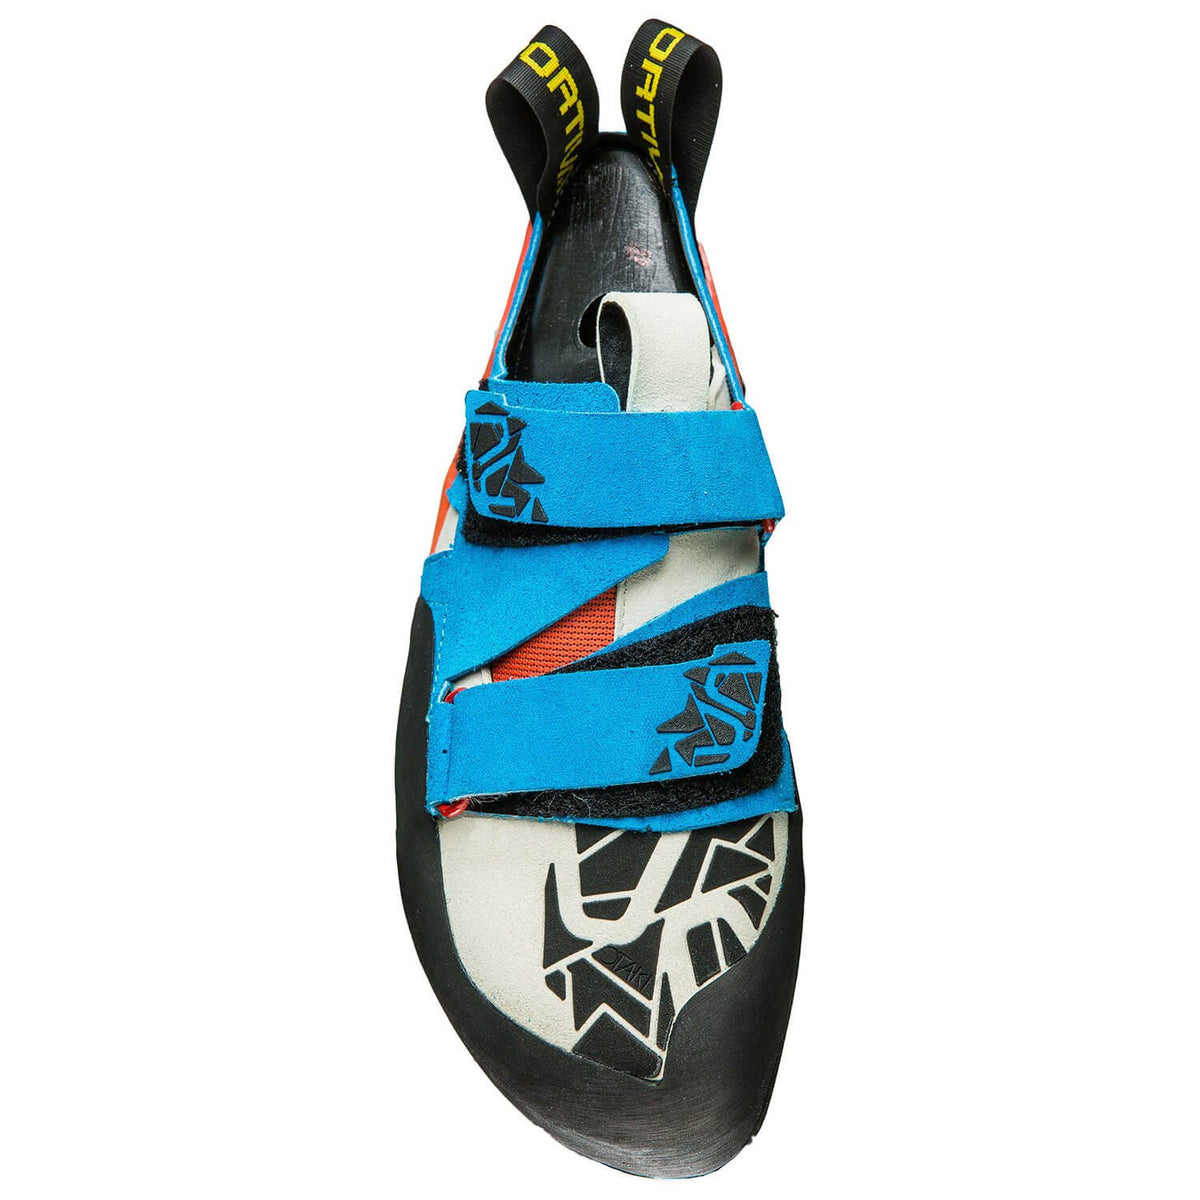 La Sportiva Otaki climbing shoe, view from above showing strap detail